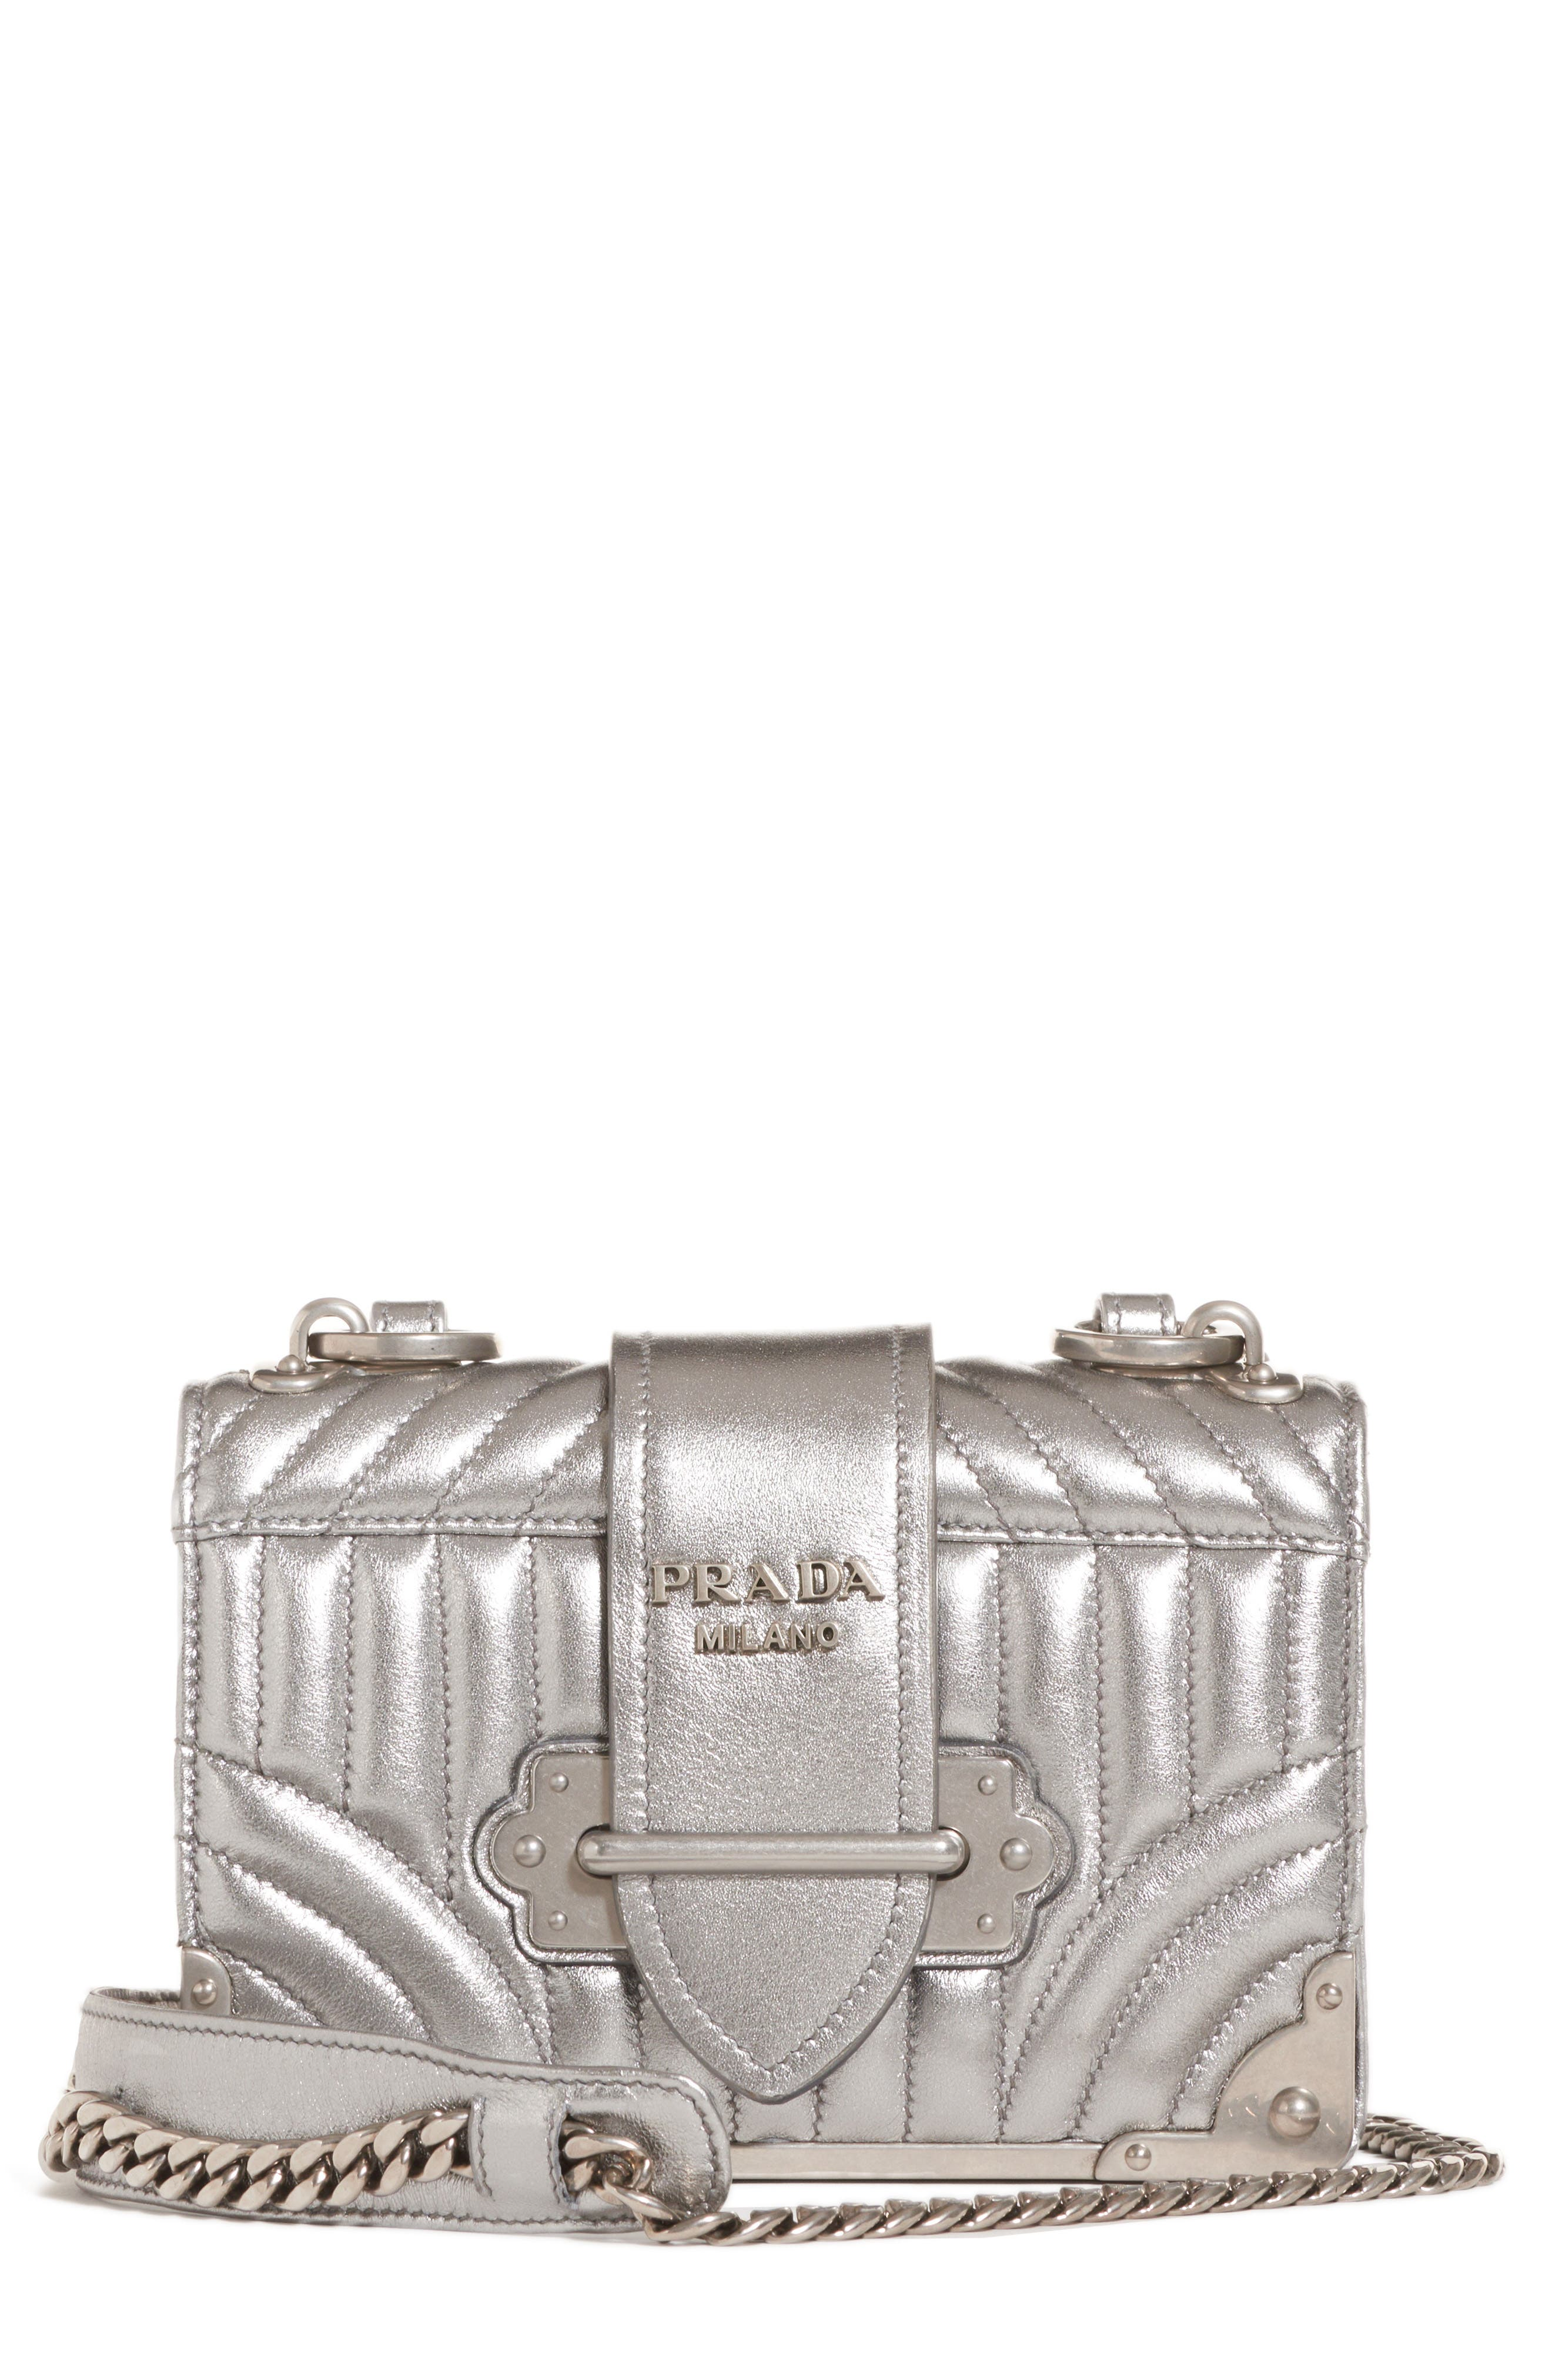 Prada Cahier Quilted Metallic Leather Crossbody Bag